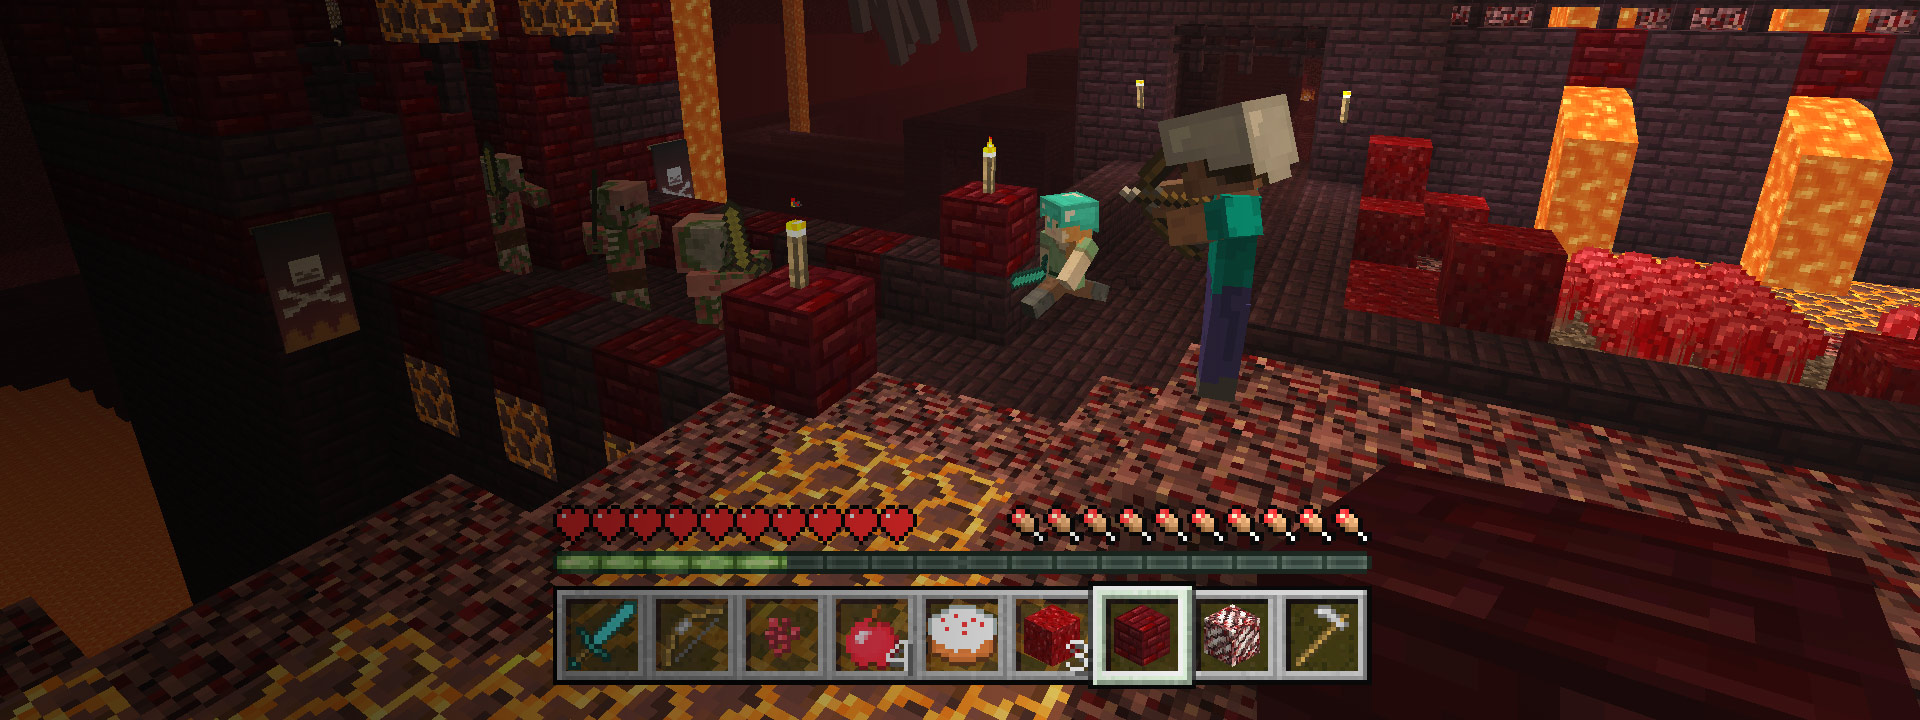 Minecraft more fun with friends, Minecraft characters in a battle